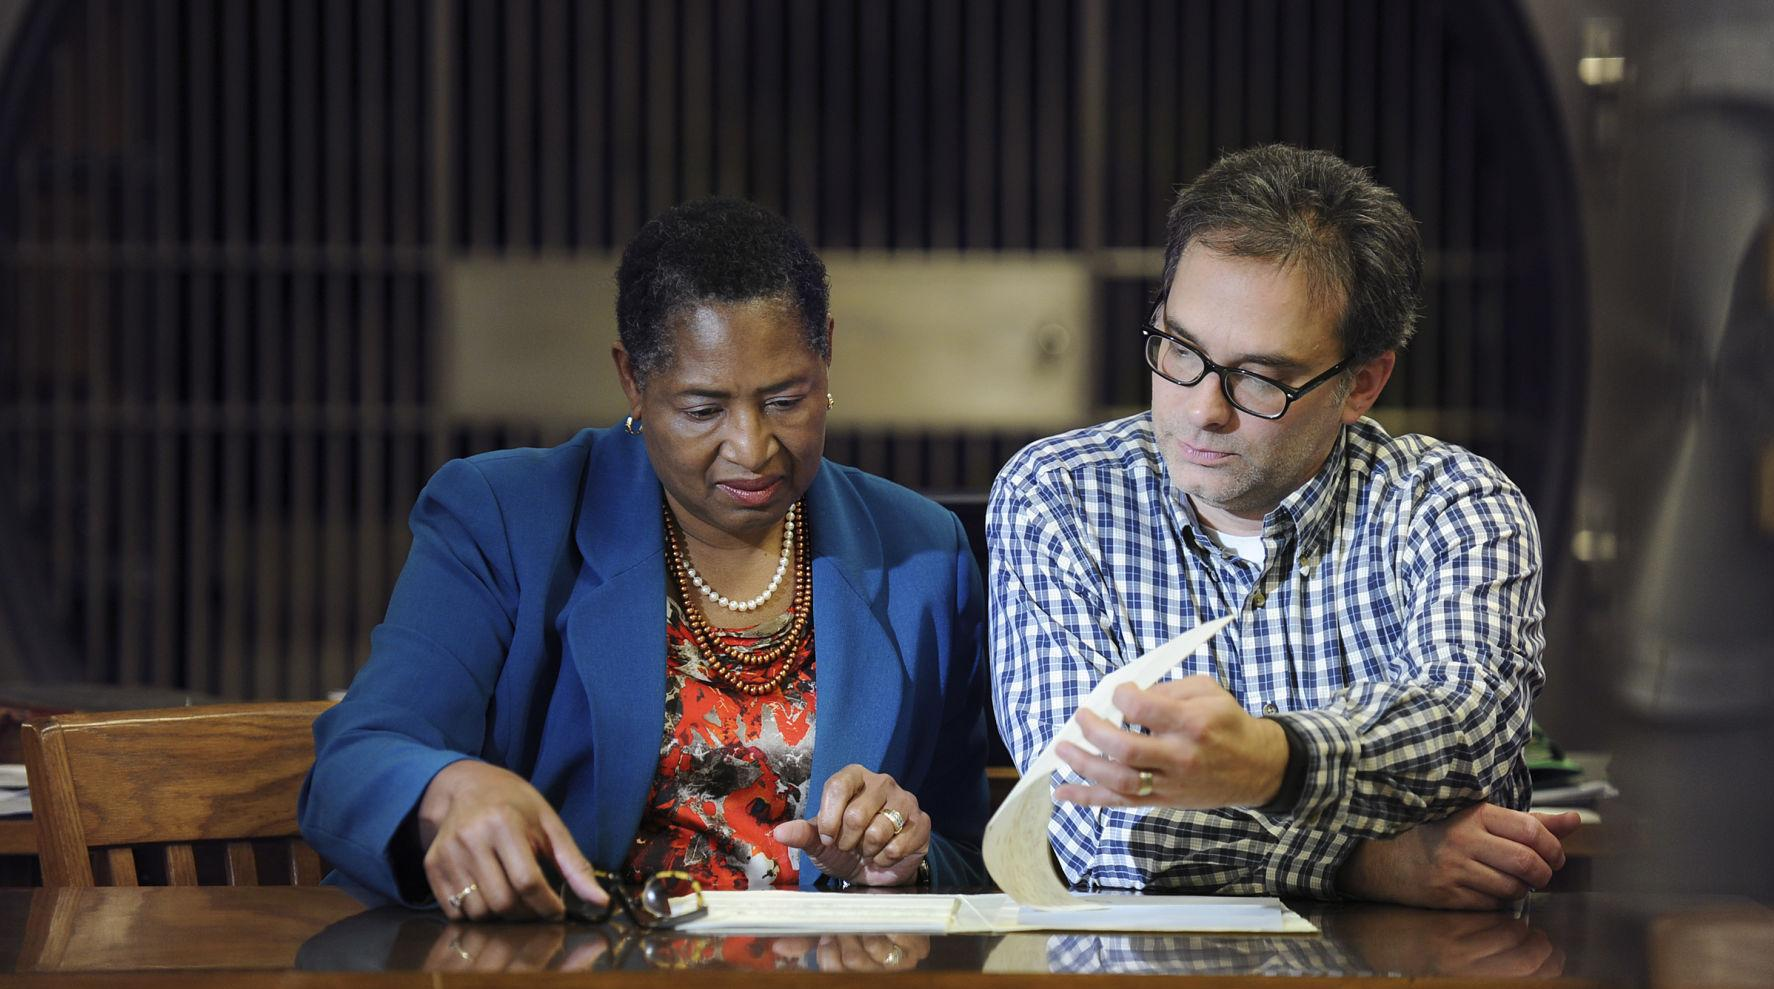 Archivist Unravels Mystery Of Why Freeman Entered Slavery Decatur Decaturdaily Com